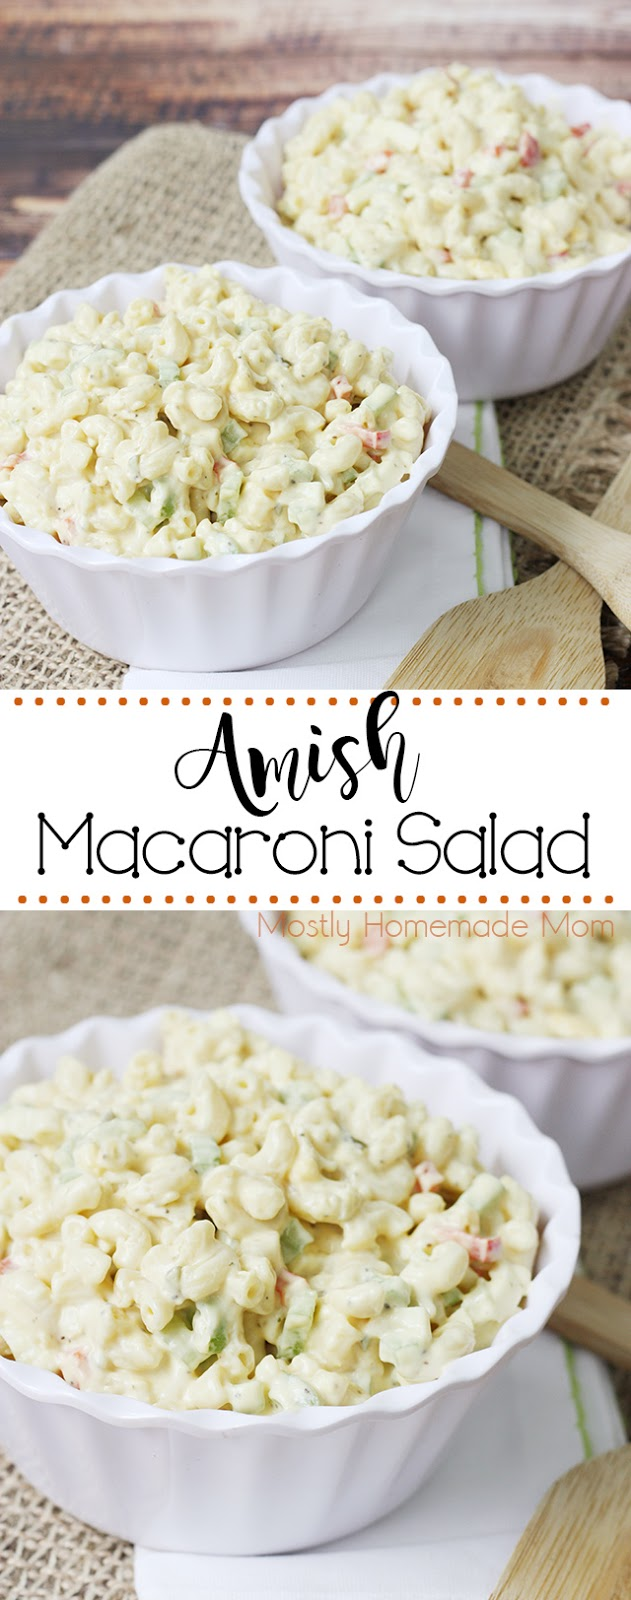 walmart amish macaroni salad recipe